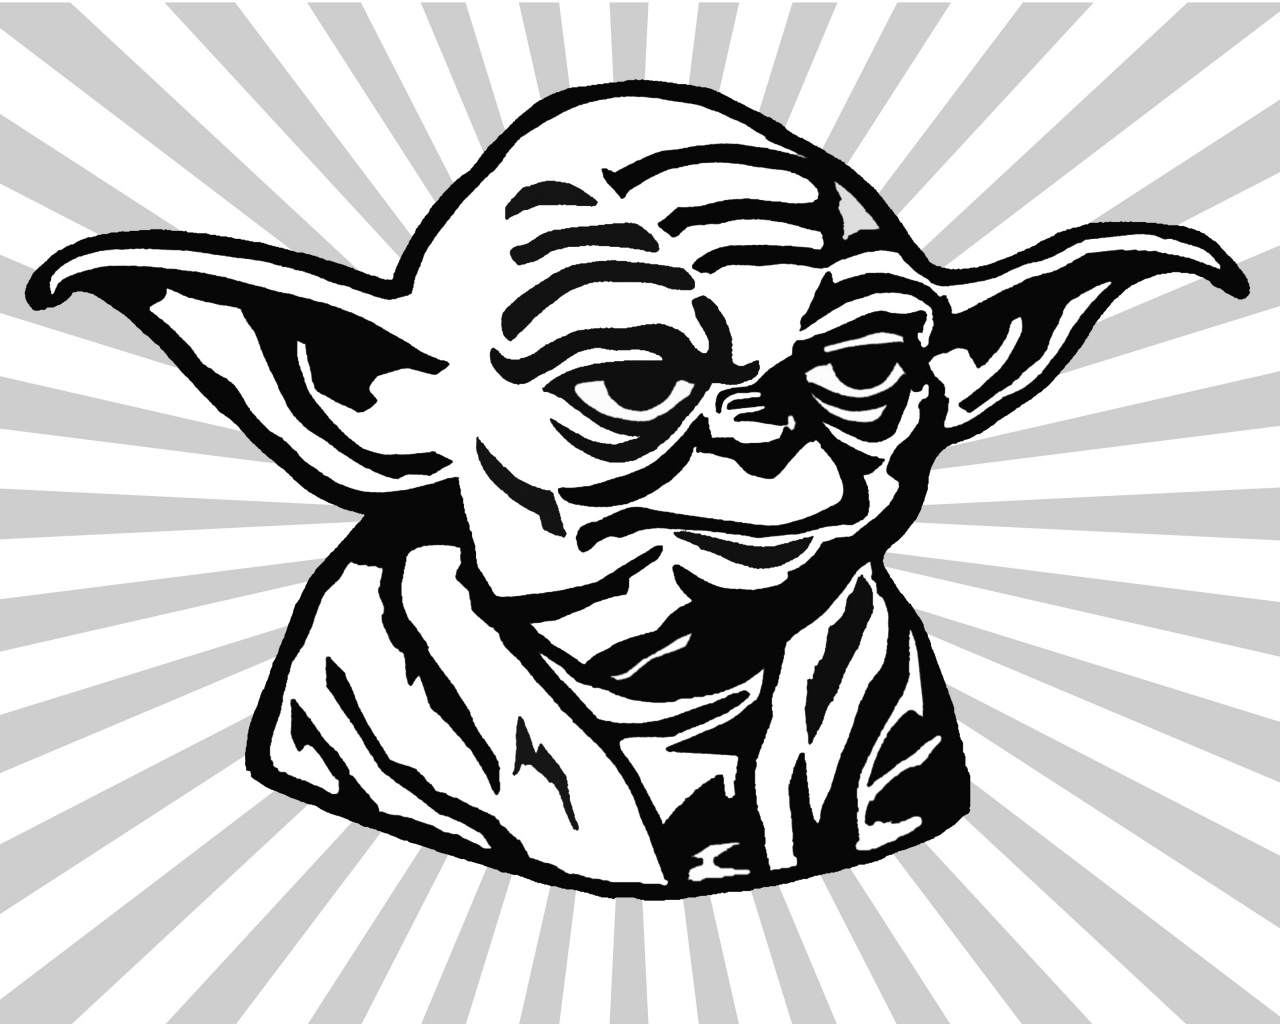 Free Yoda Cliparts, Download Free Clip Art, Free Clip Art on Clipart.